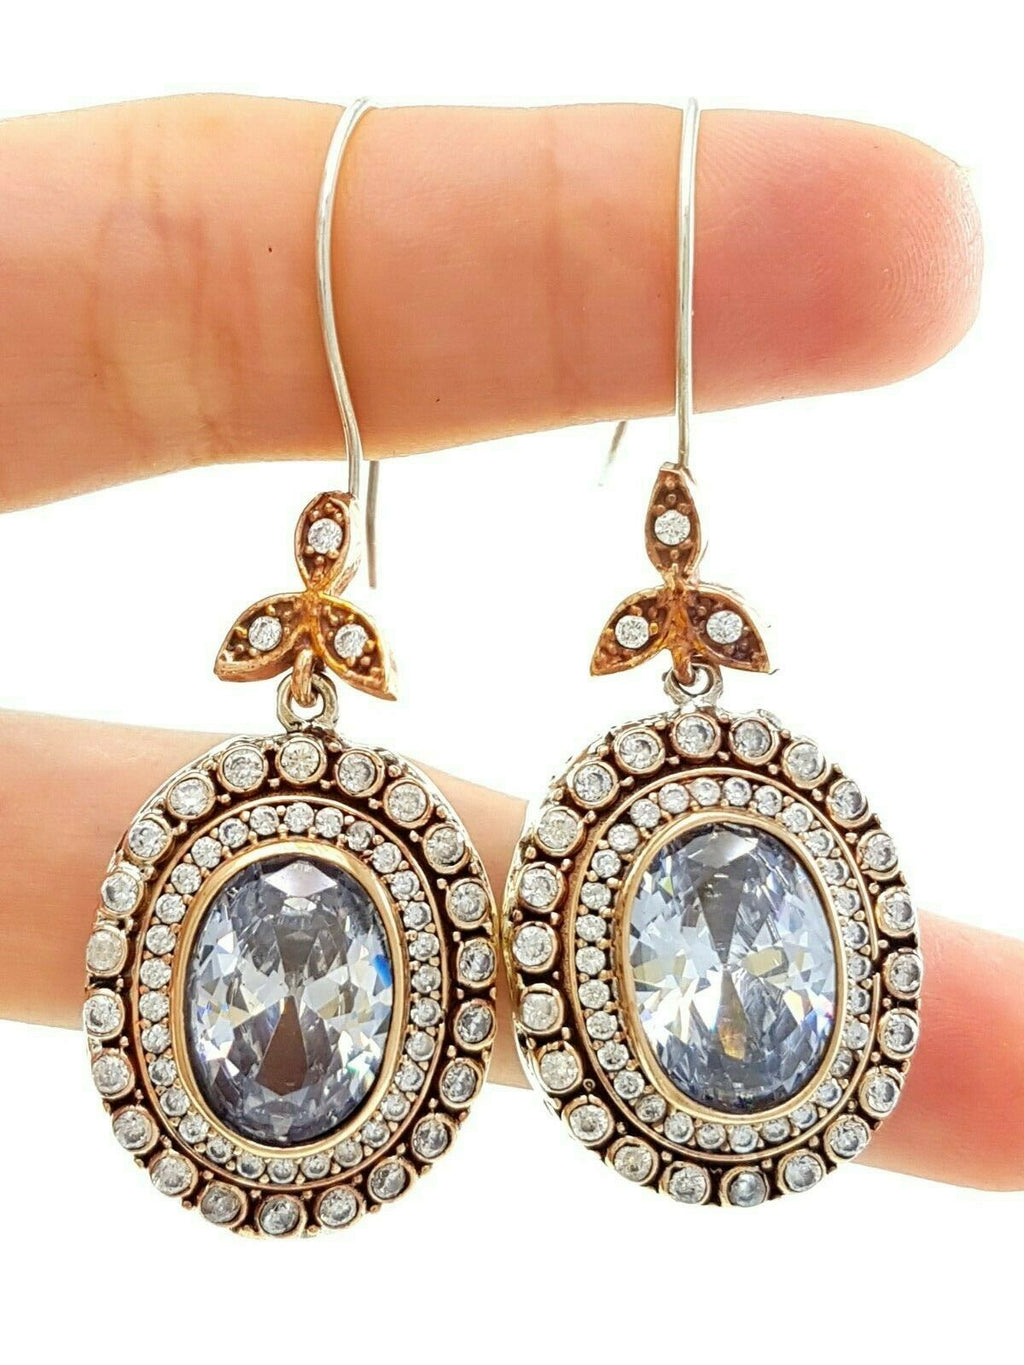 Authentic Turkish Wholesale Handmade 925 Sterling Silver Jewelry Earrings BN Gift VK03 - Turkishsilverjewelry